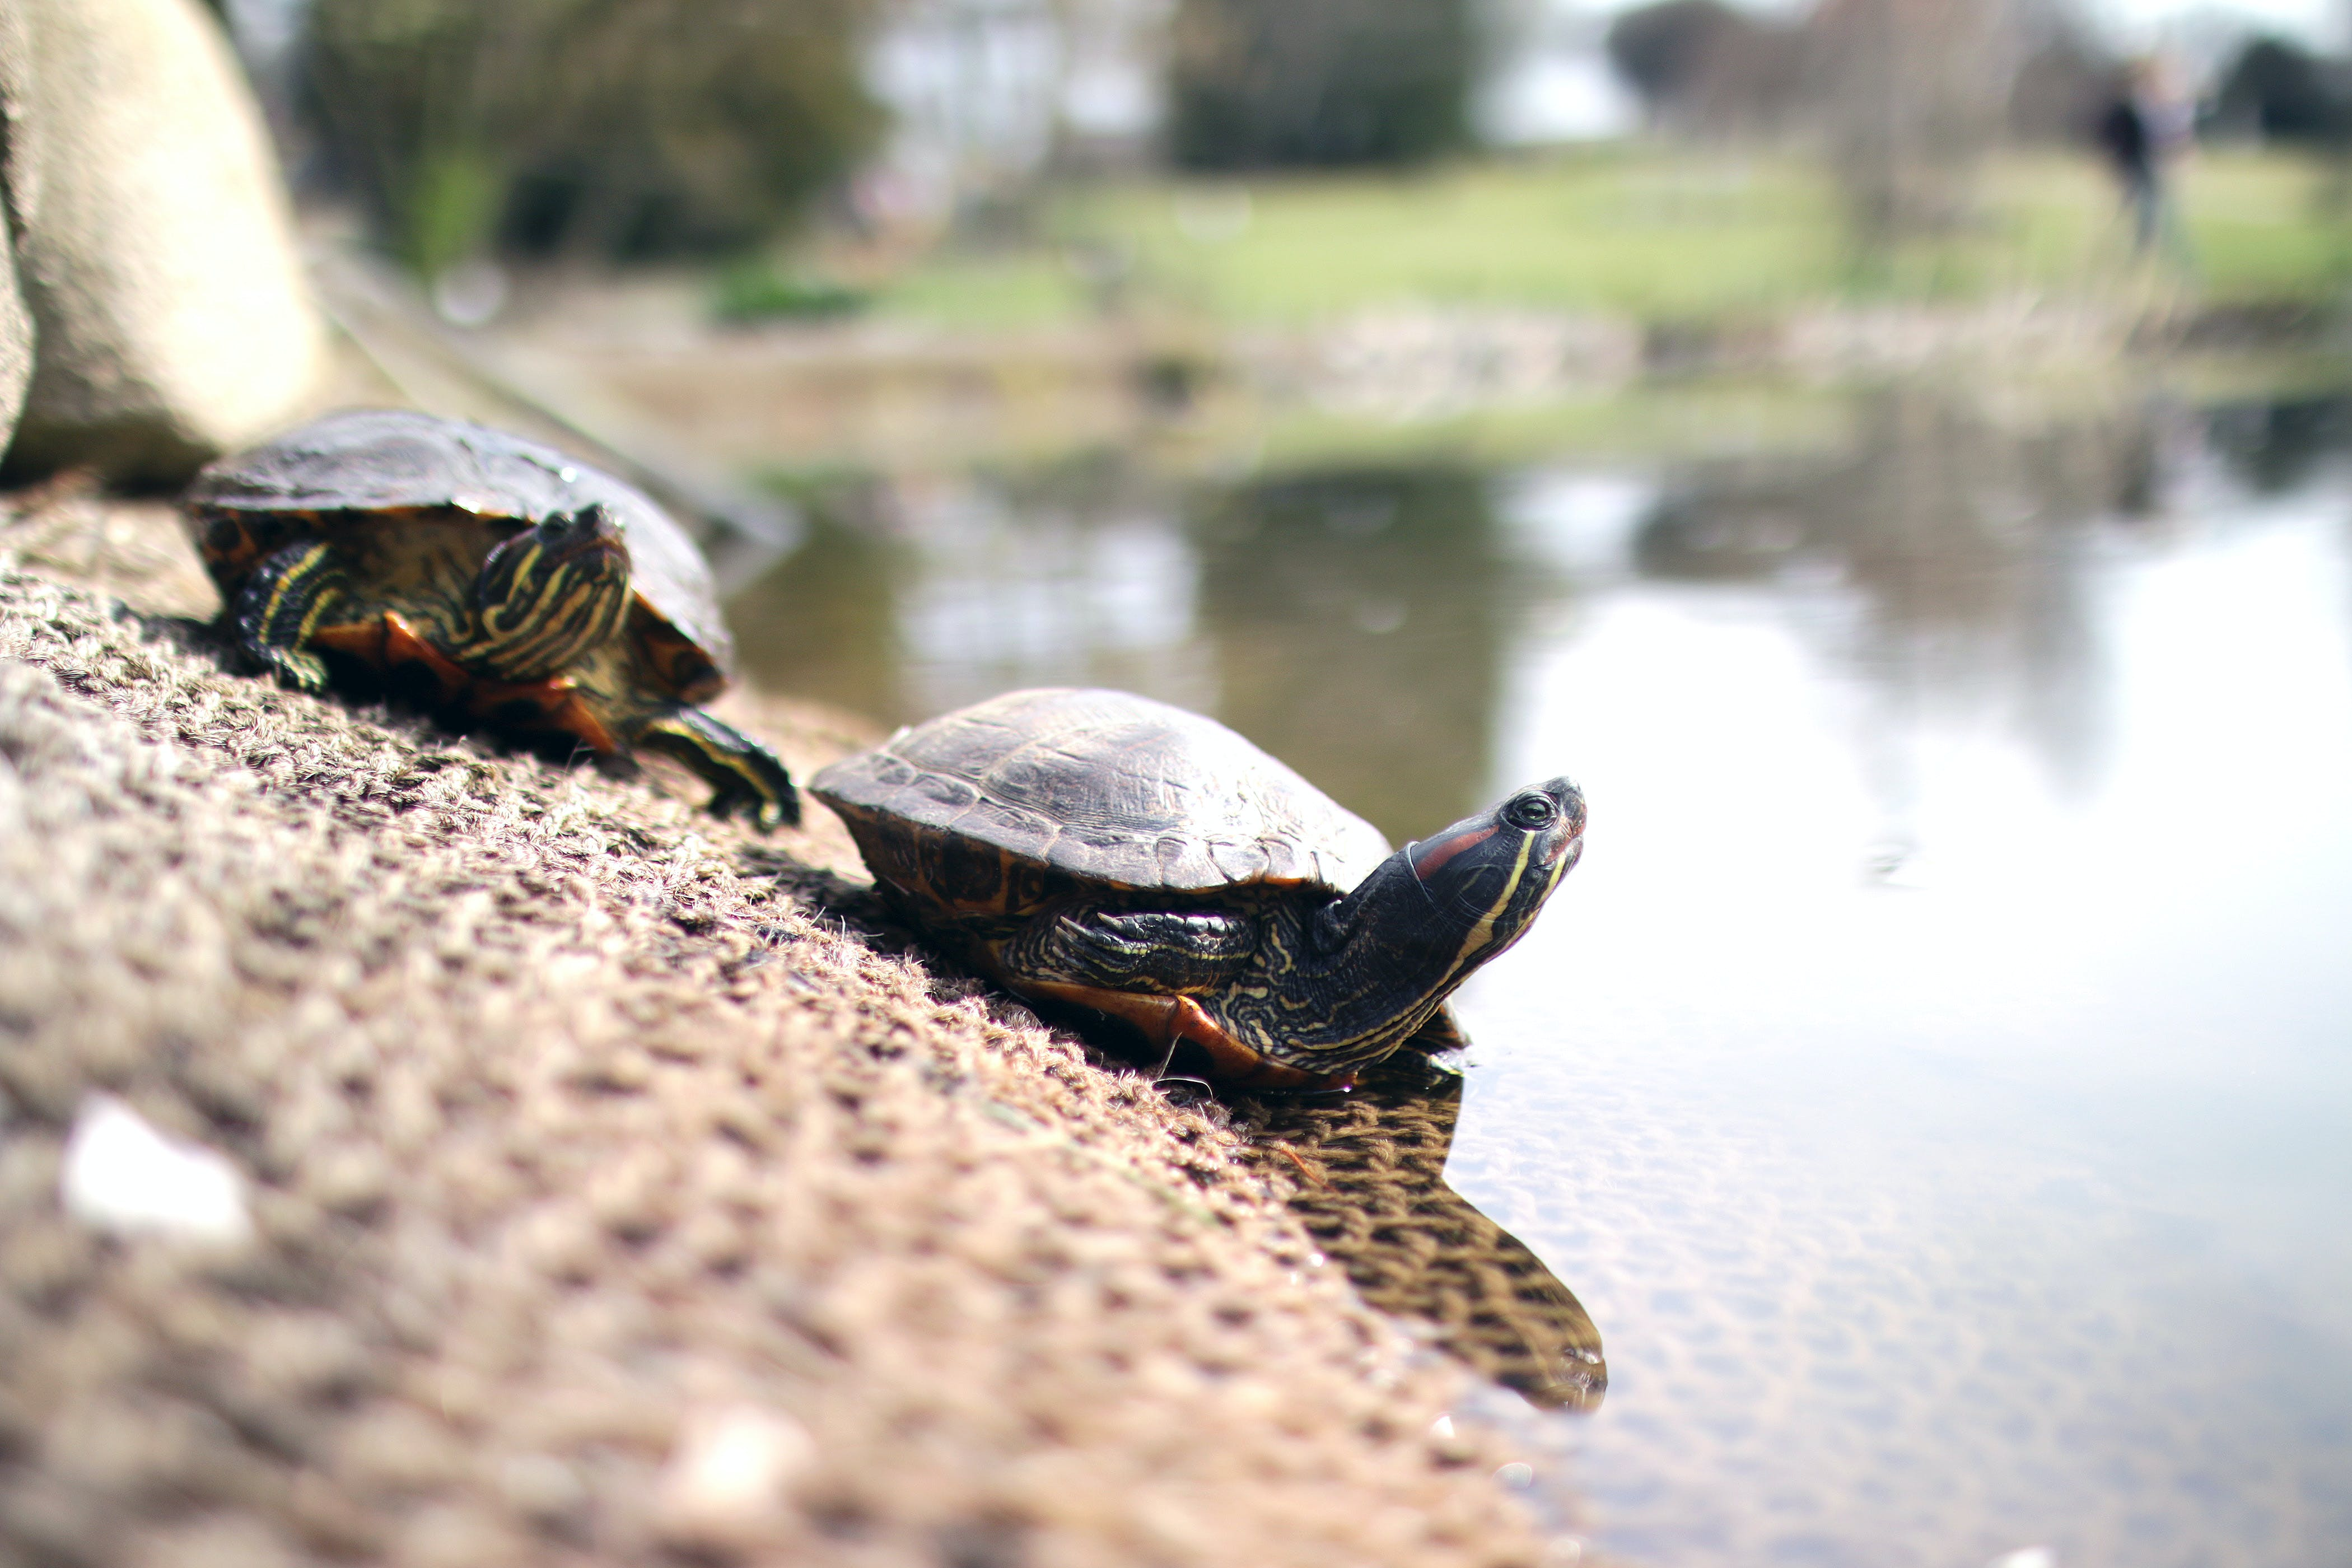 Selective Focus Photography of Two Brown Turtles Crawling Near Calm Body of Water